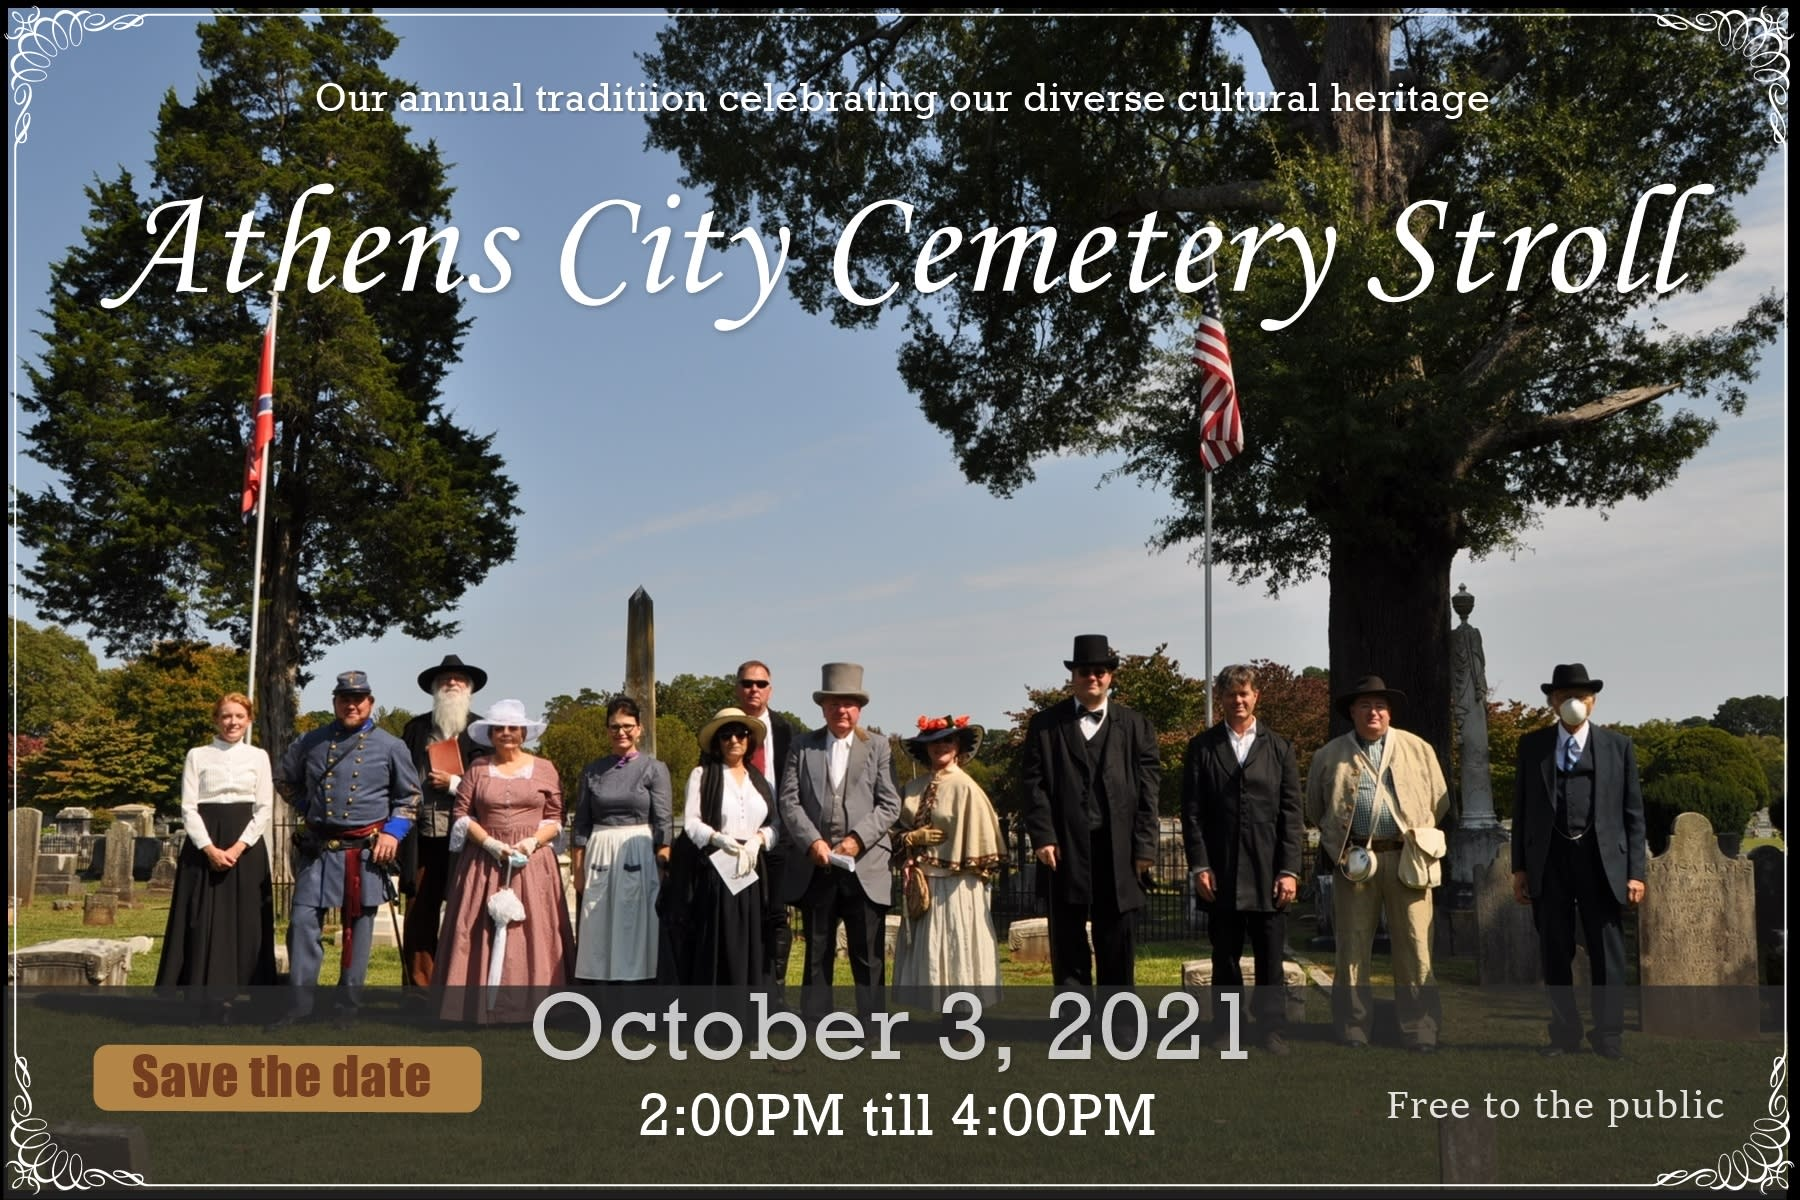 athens cemetery stroll